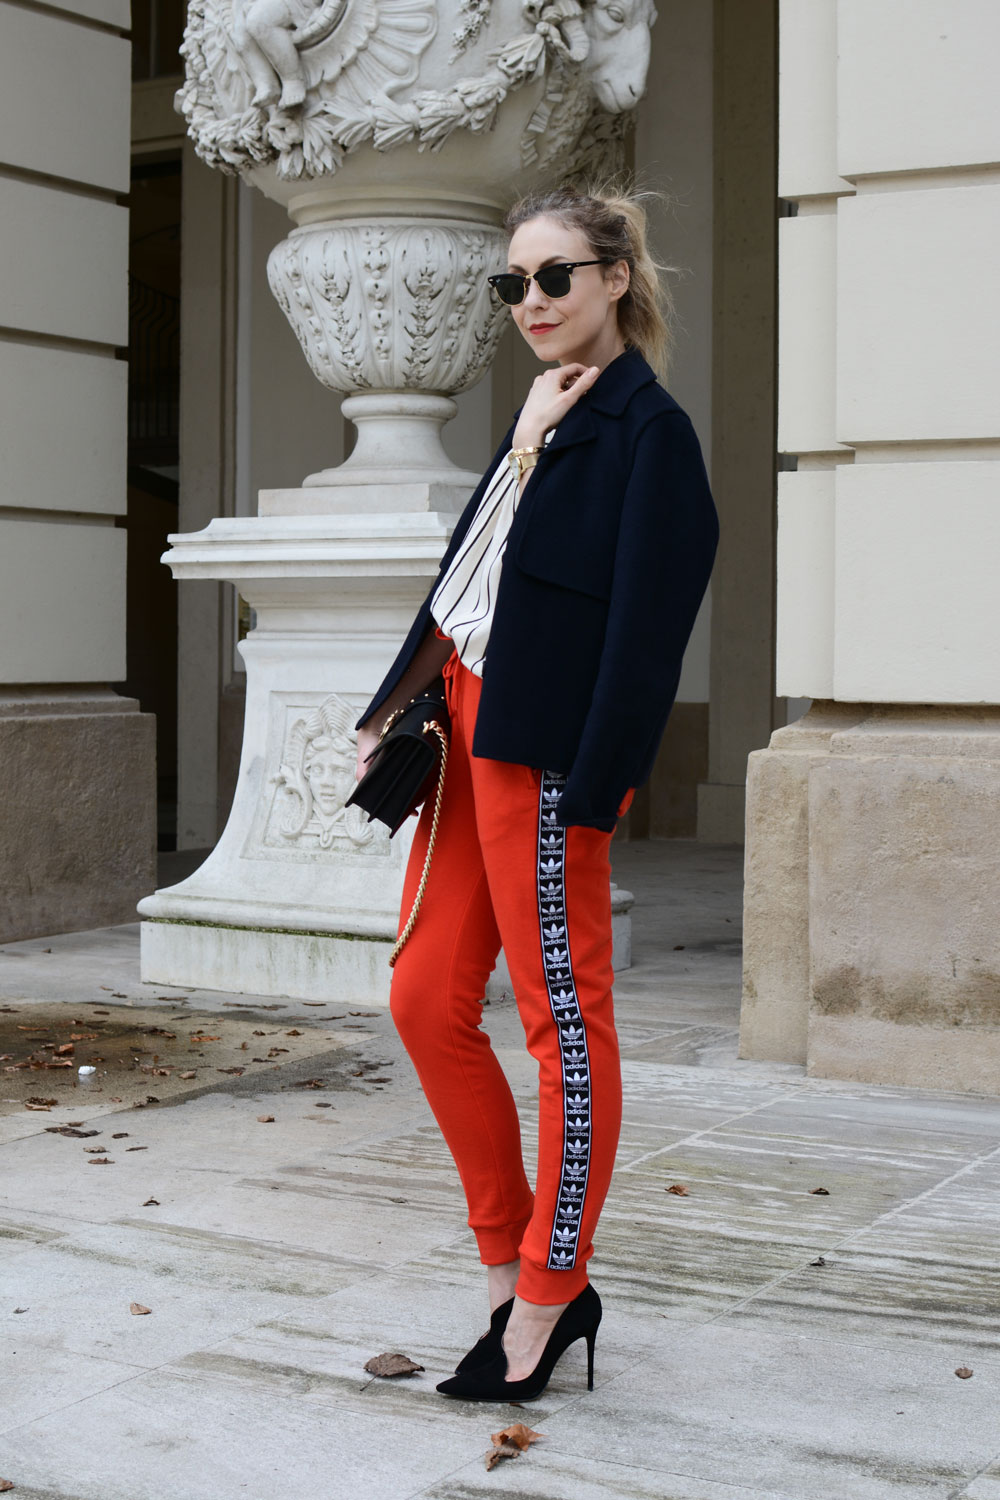 Athleisure wear, Adidas, jogging pants, track pants, pinko bag, vienna street style,